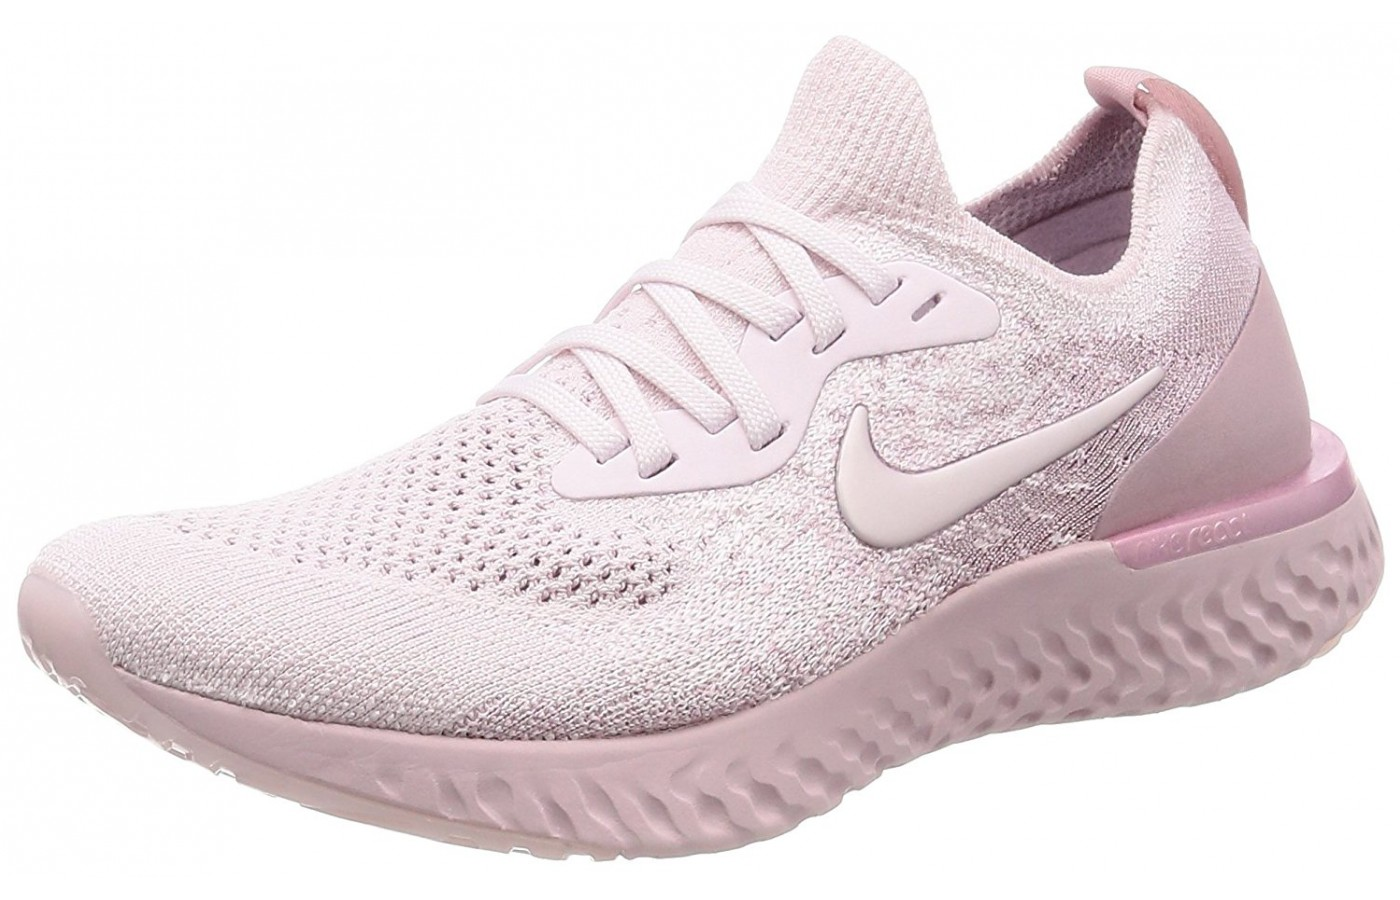 f6f8c3a50550 Nike Epic React Flyknit Tested for Performance in 2019